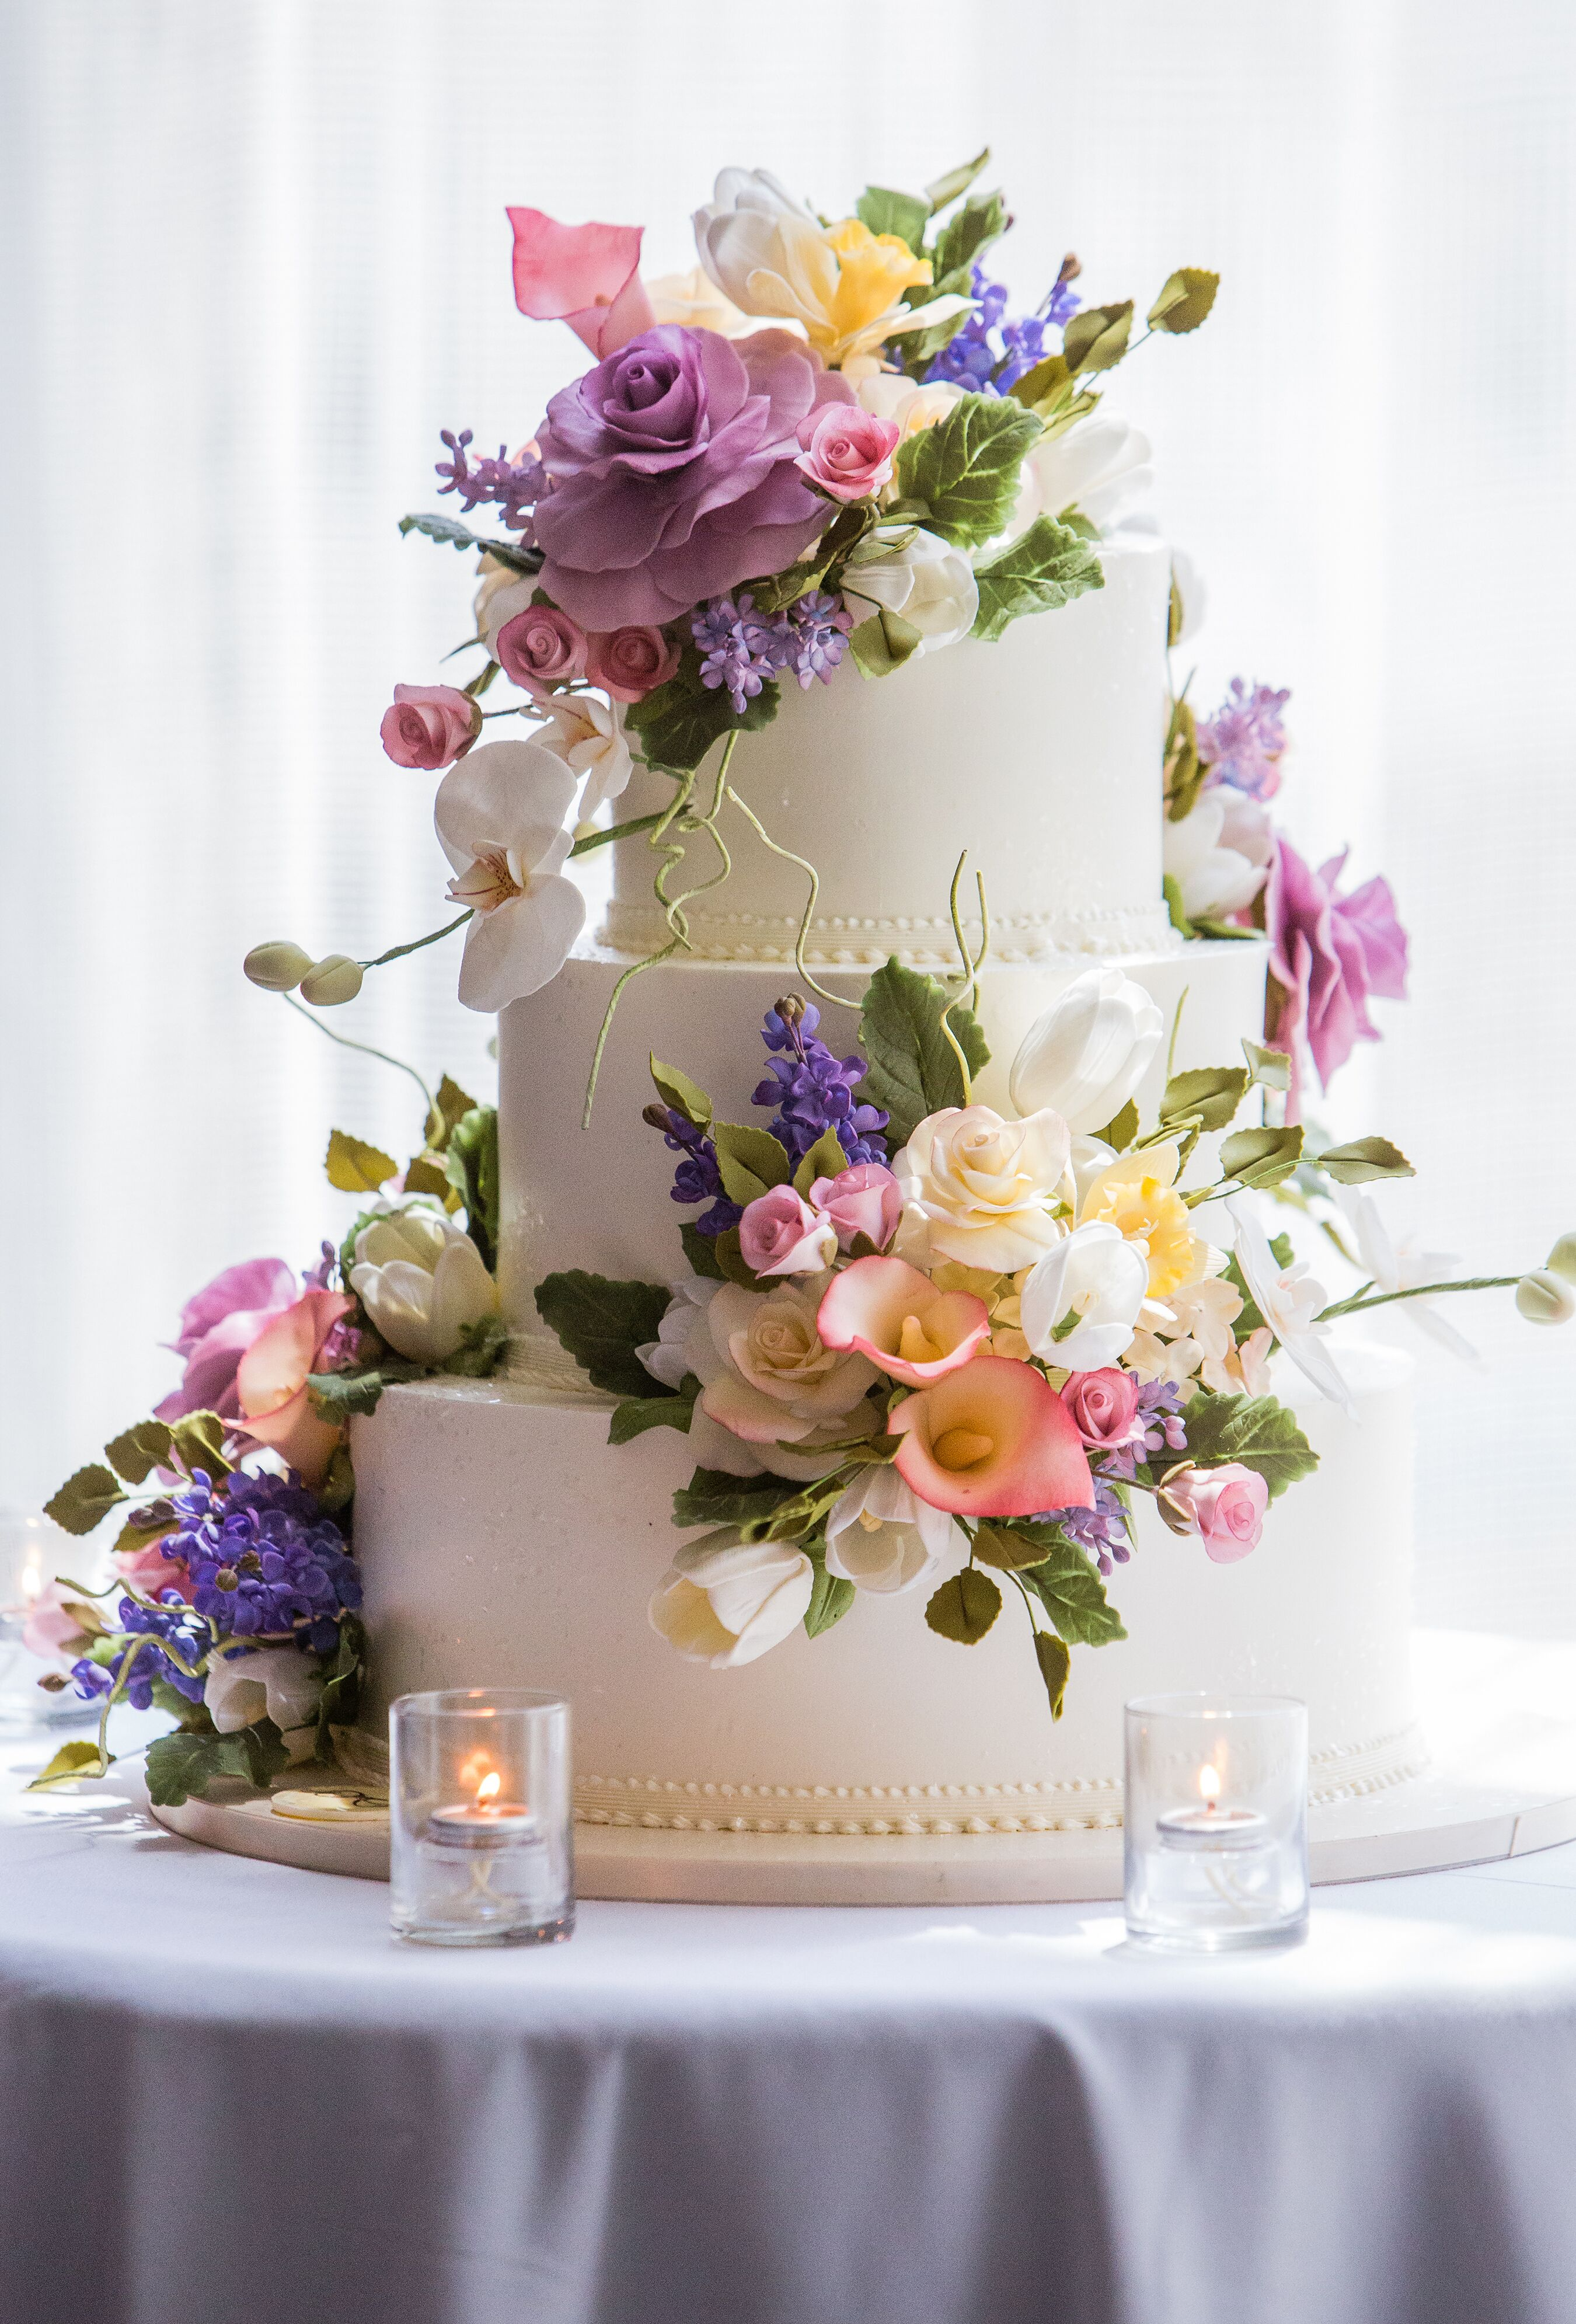 Sugar Roses, Peonies And Orchid Wedding Cake Decor